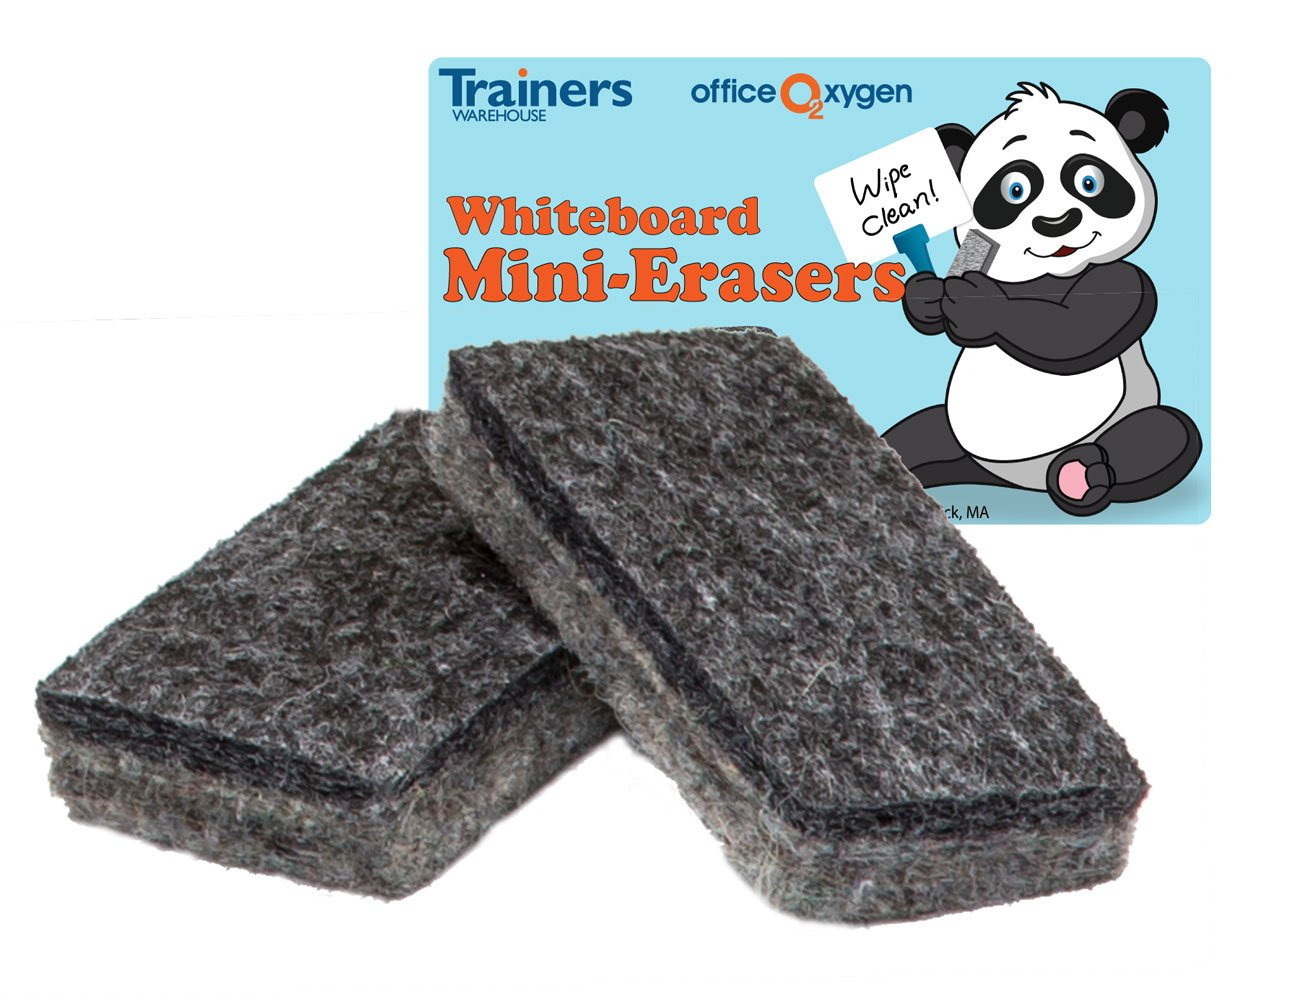 Mini Erasers for Whiteboard Dry-erase, set of 30 erasers, 2.5'' long, for classroom and office